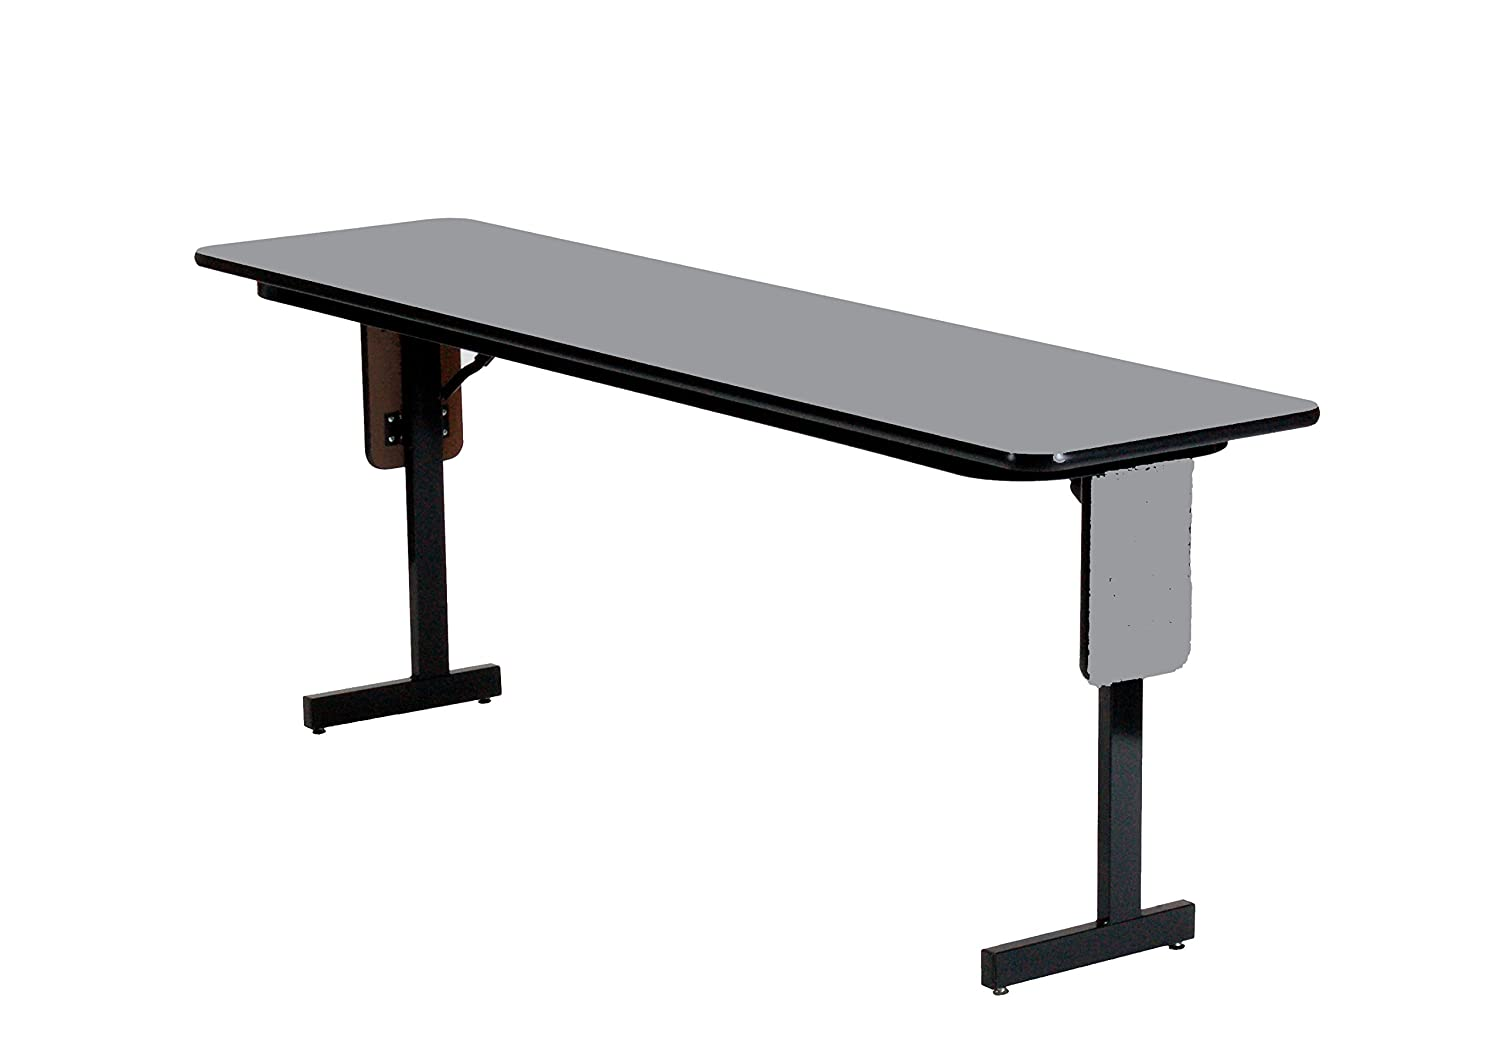 Black Granite 60 Length Correll SPA1860PX-07 Adjustable Height Folding Seminar Table with Panel Leg 22-30 Wide Rectangular Top 18 Height